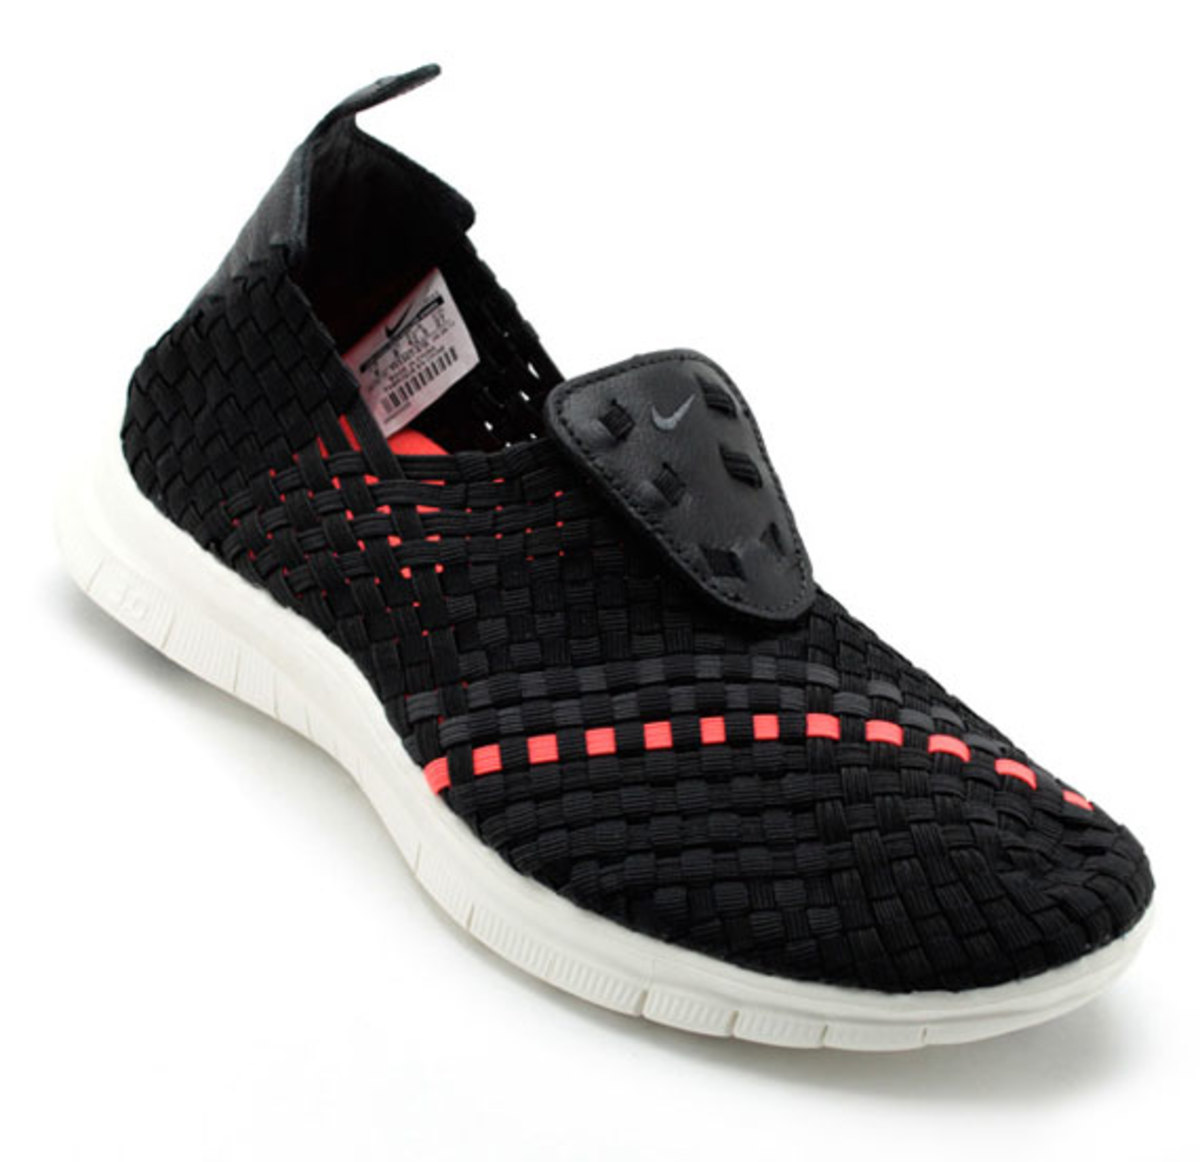 nike-free-woven-spring-2013-colorway-preview-08